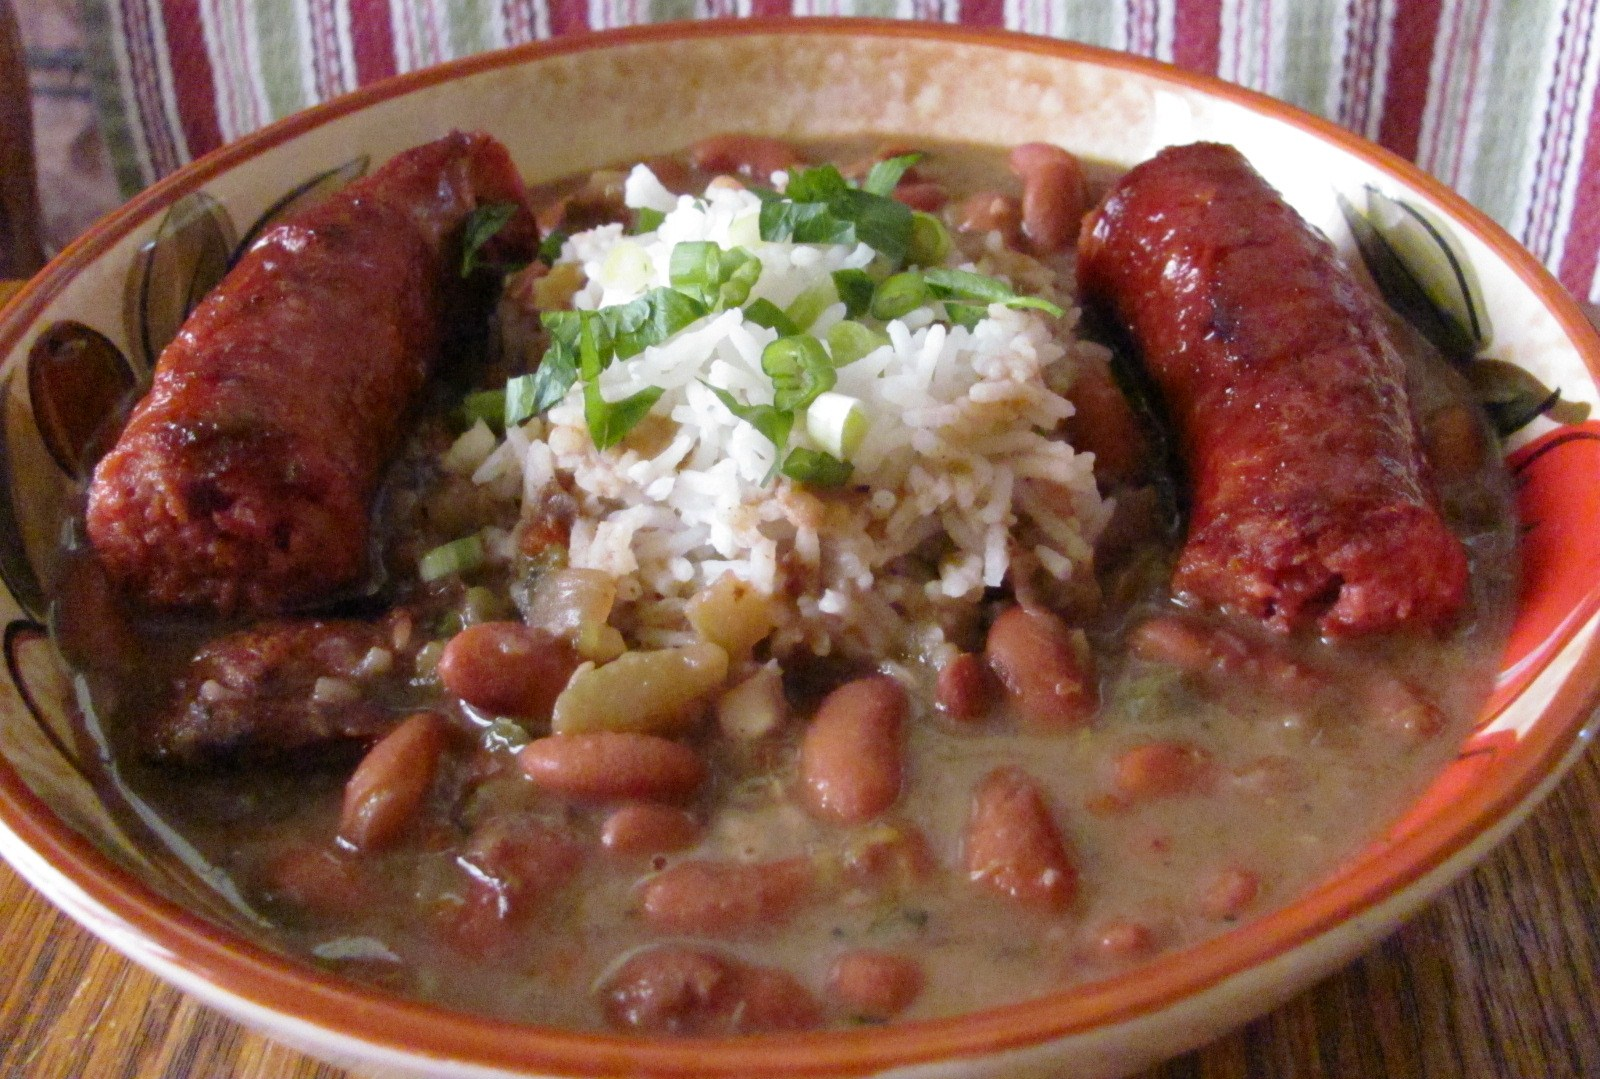 ... red beans and rice is found on nearly every restaurant menu as